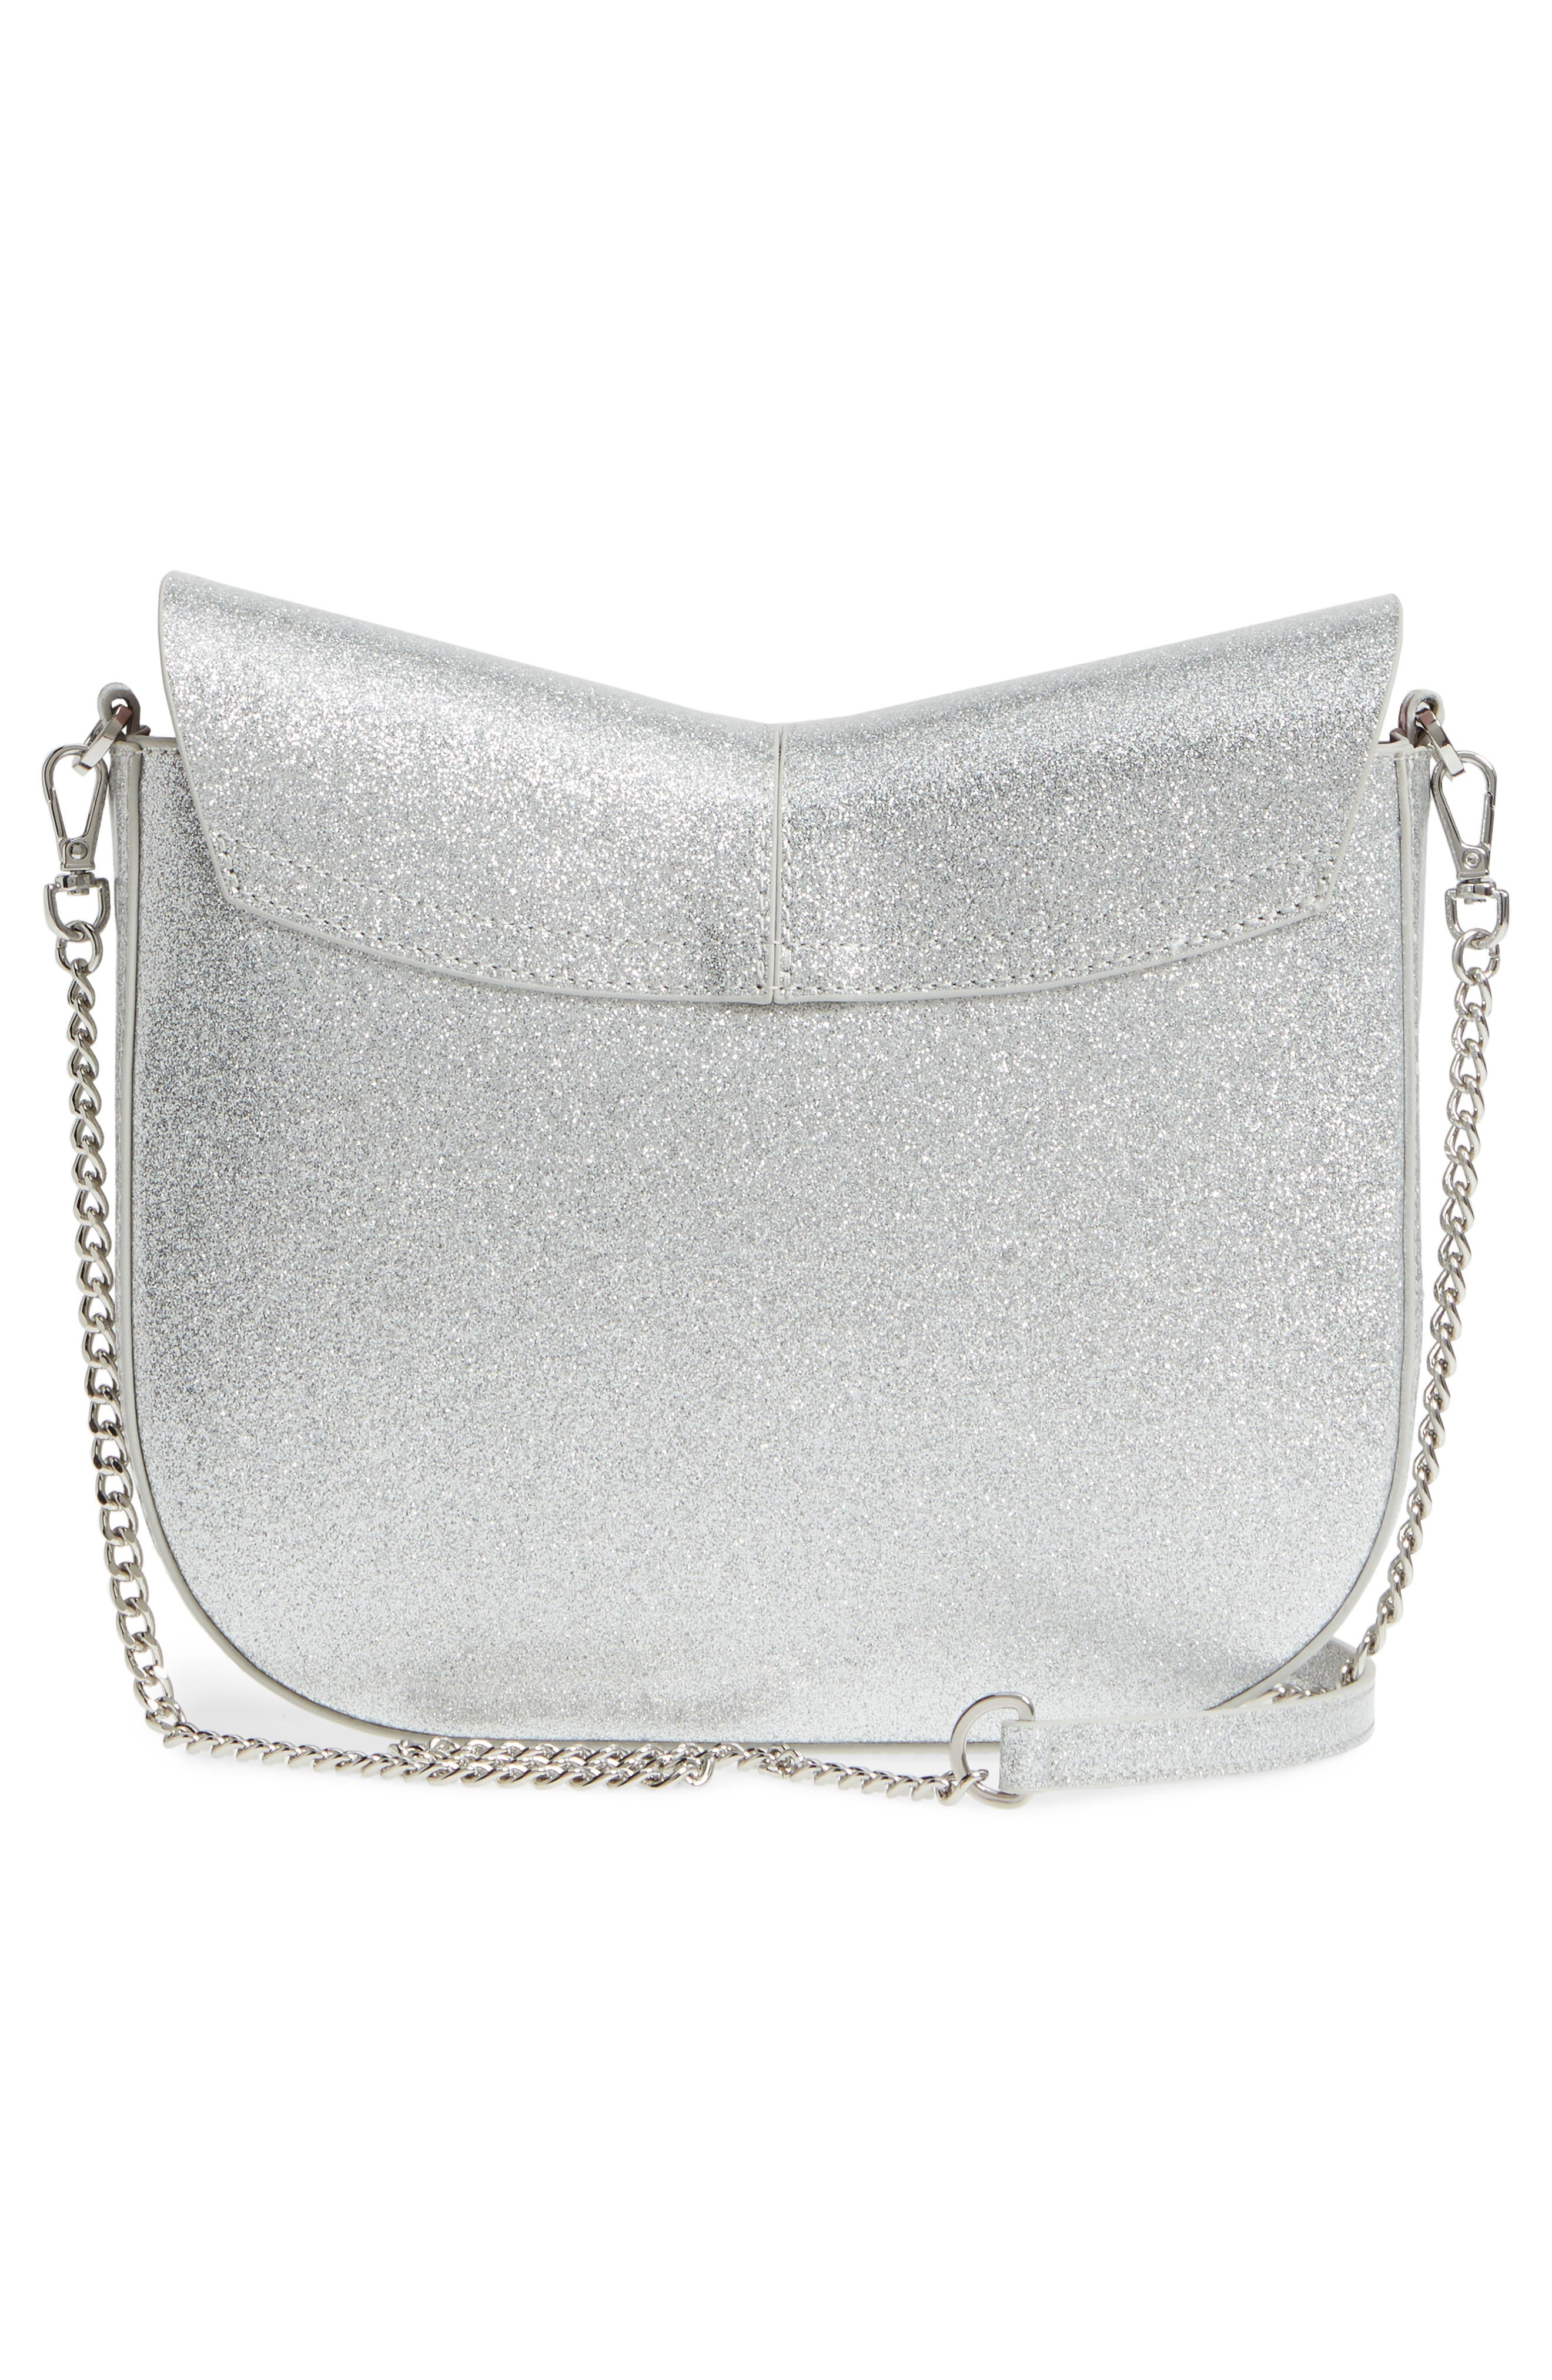 Hildaa Glitter Faux Leather Crossbody Bag,                             Alternate thumbnail 3, color,                             Silver